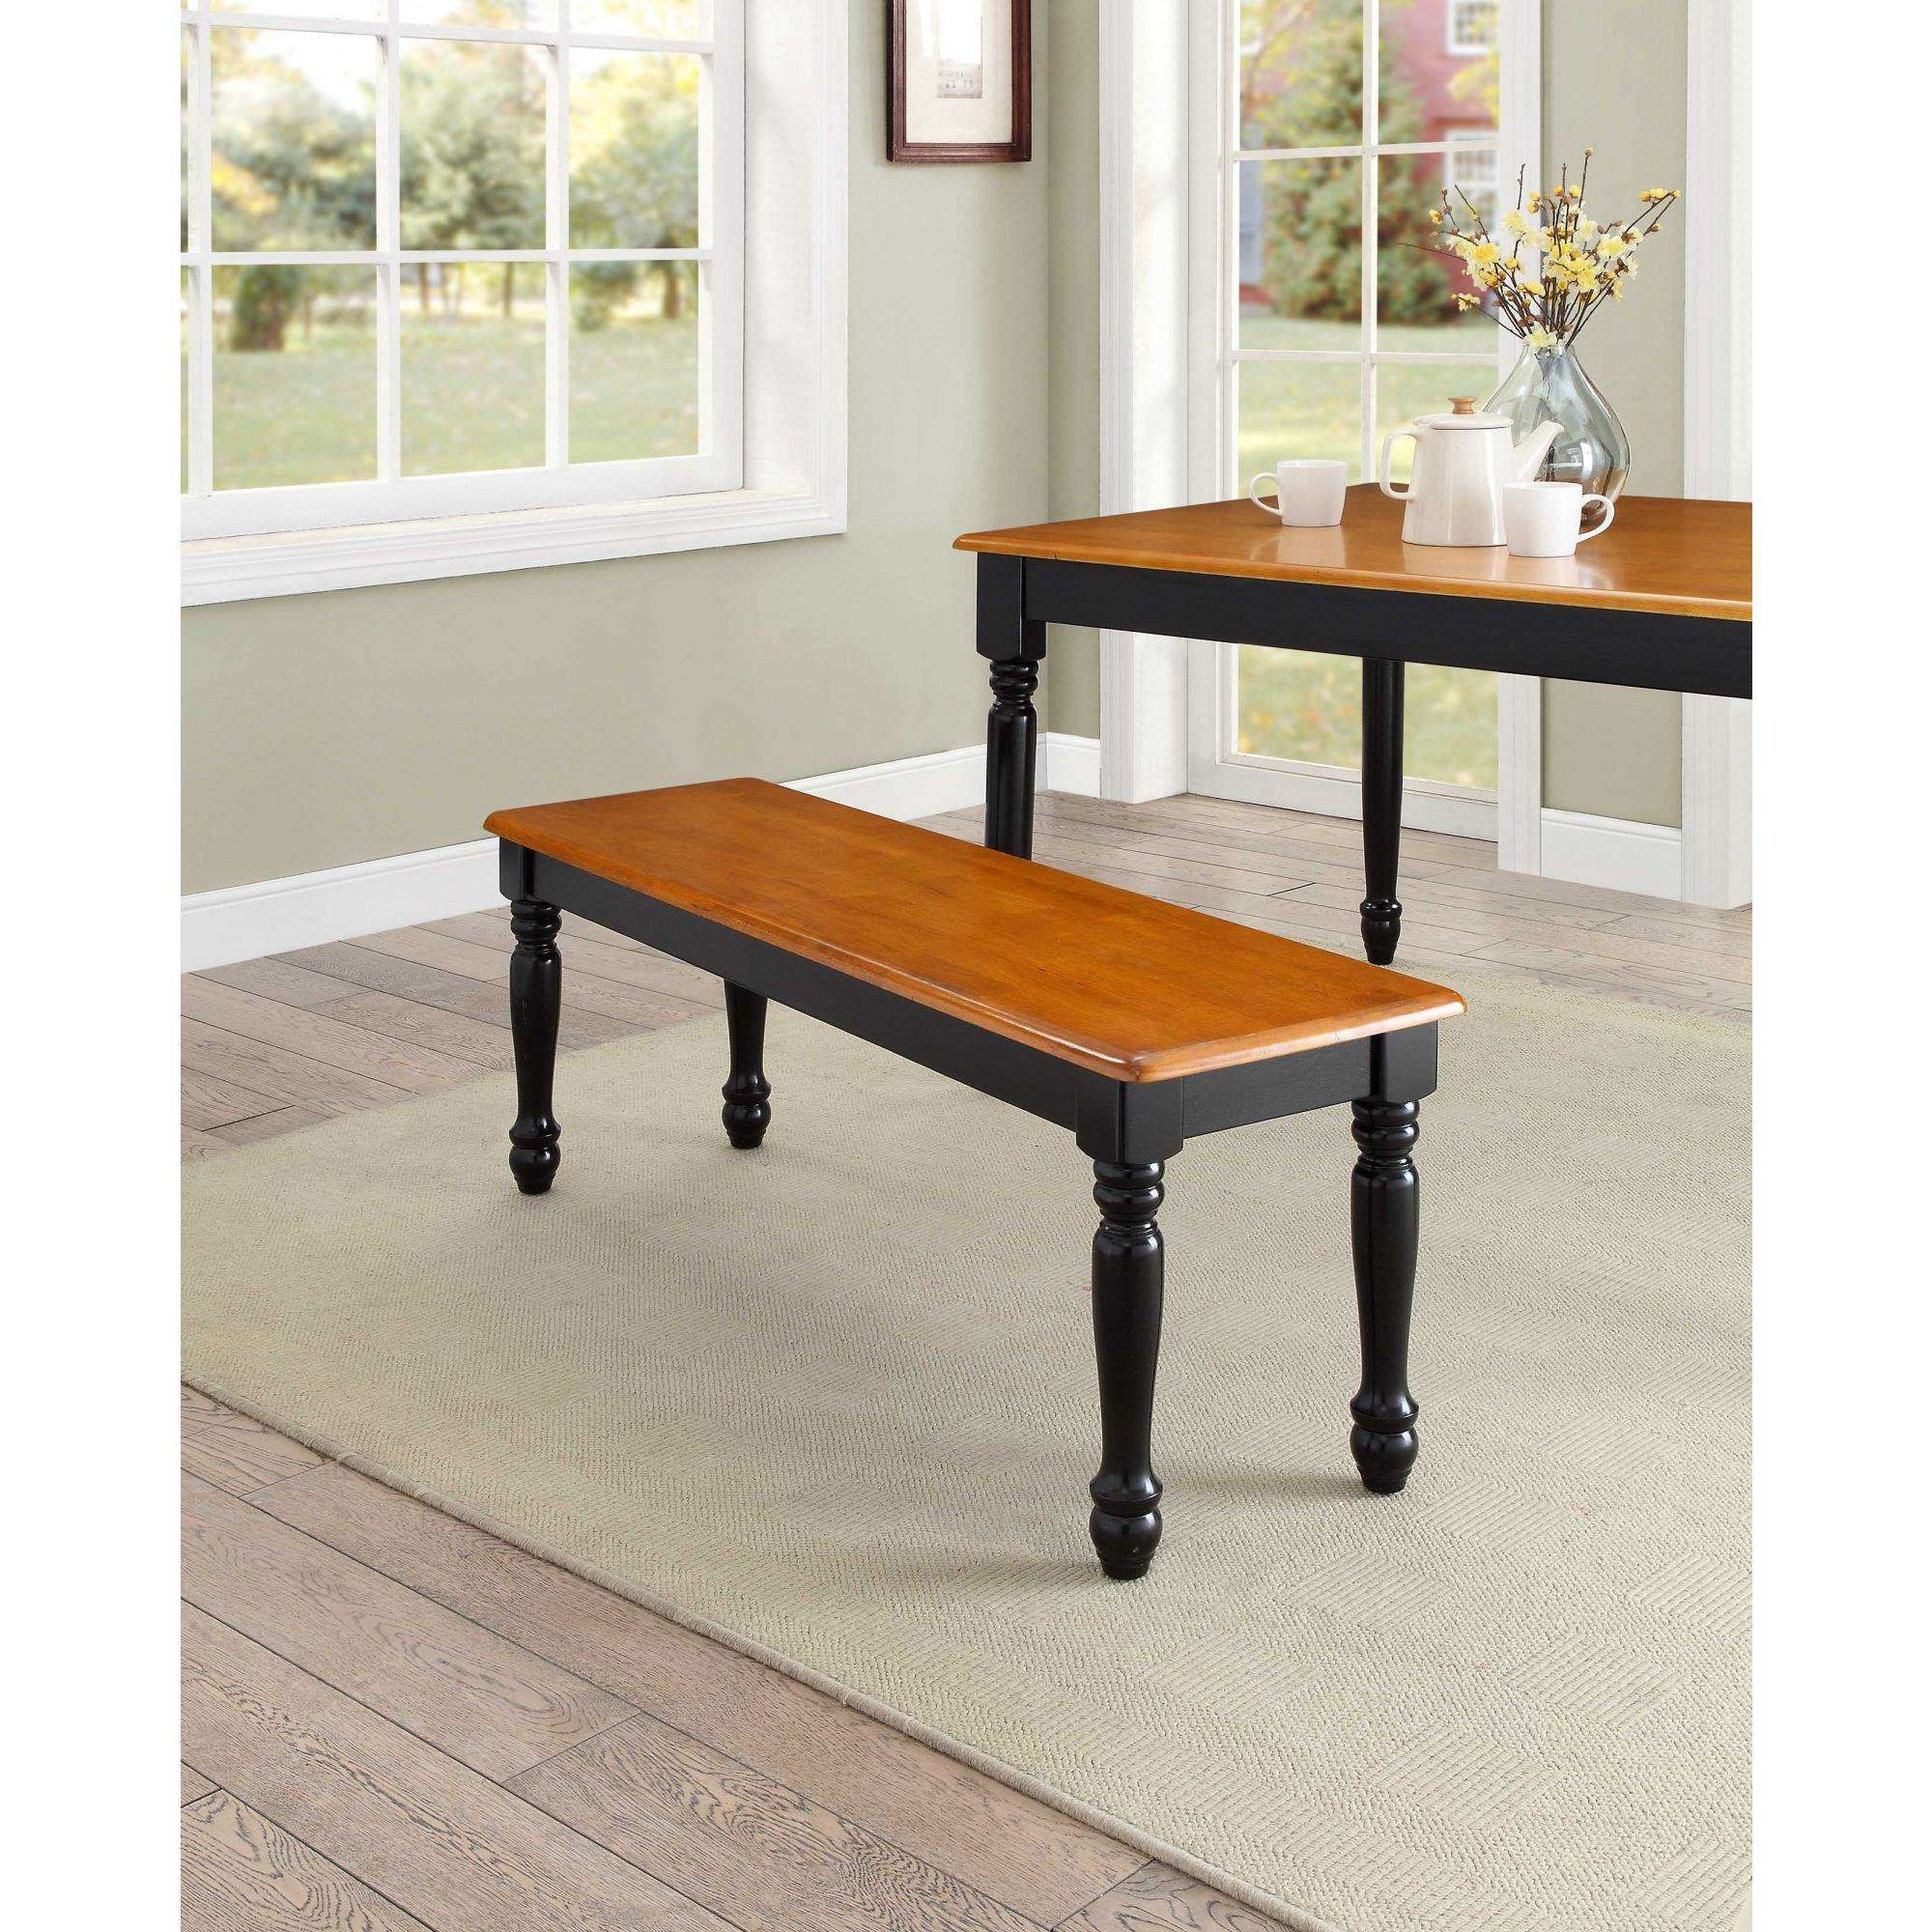 Better Homes U0026 Gardens Autumn Lane Farmhouse Solid Wood Dining Bench,  Multiple Colors